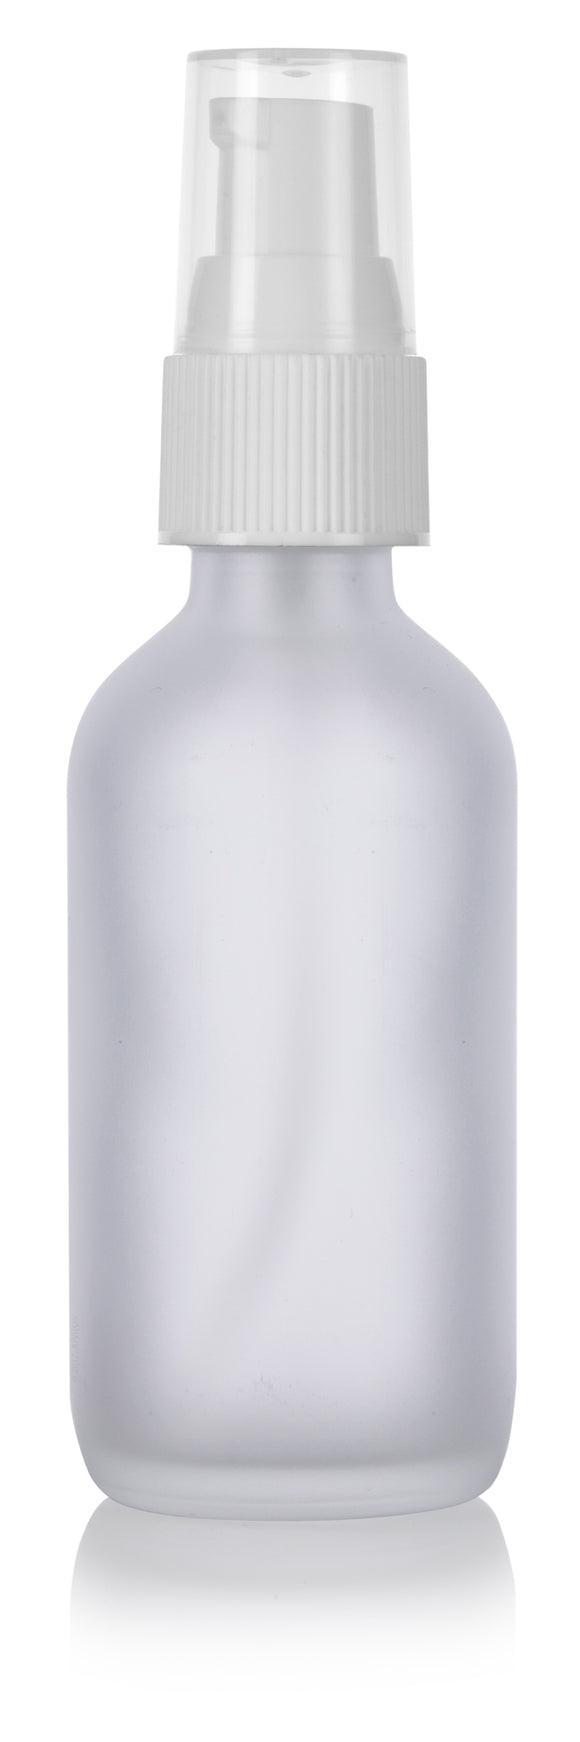 Frosted Clear Glass Boston Round Treatment Pump Bottle with White Top - 2 oz / 60 ml